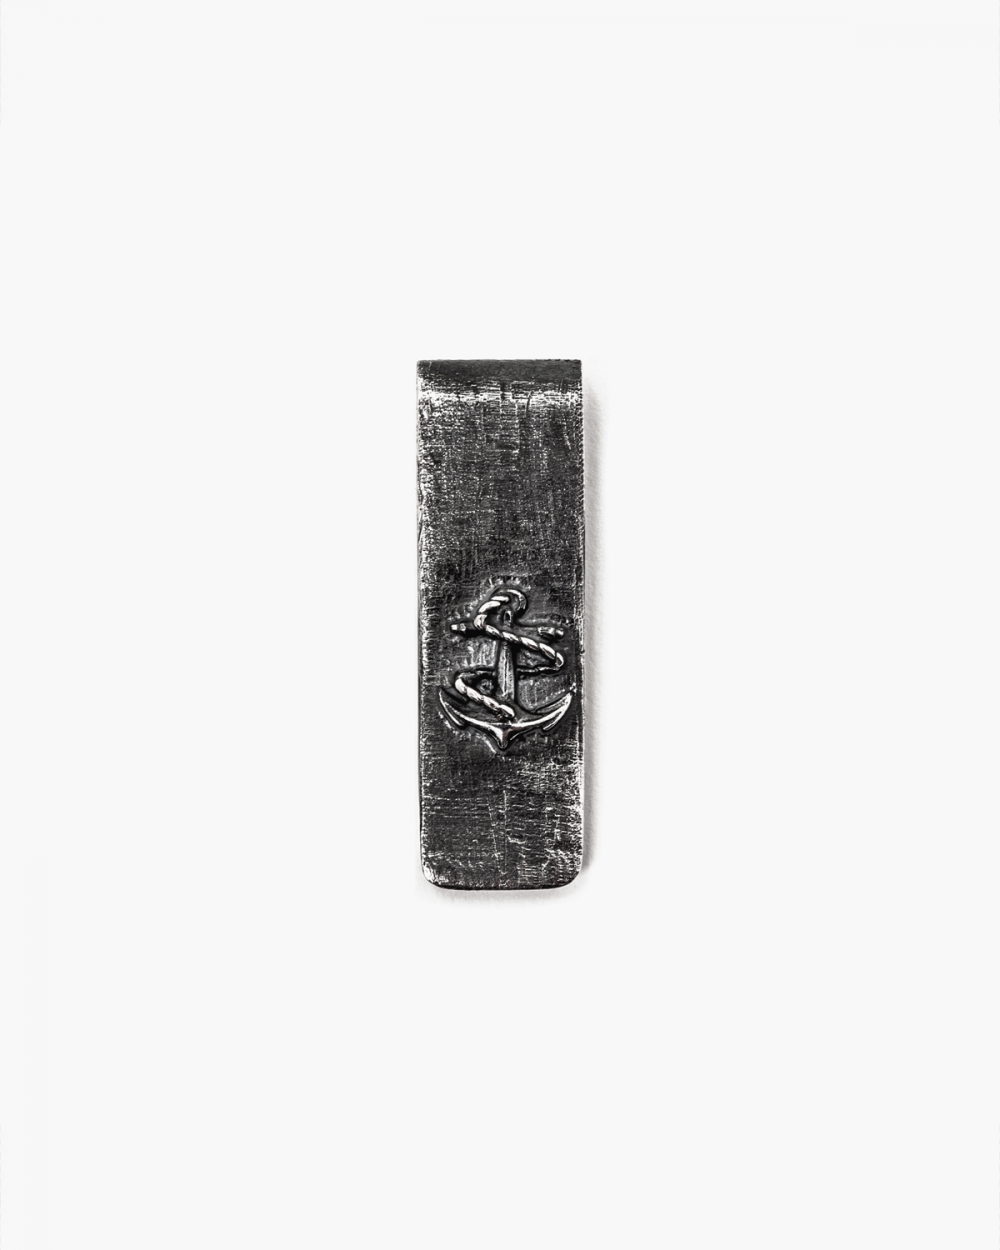 Money Clip ROPE & ANCHOR MONEY CLIP NOVE25